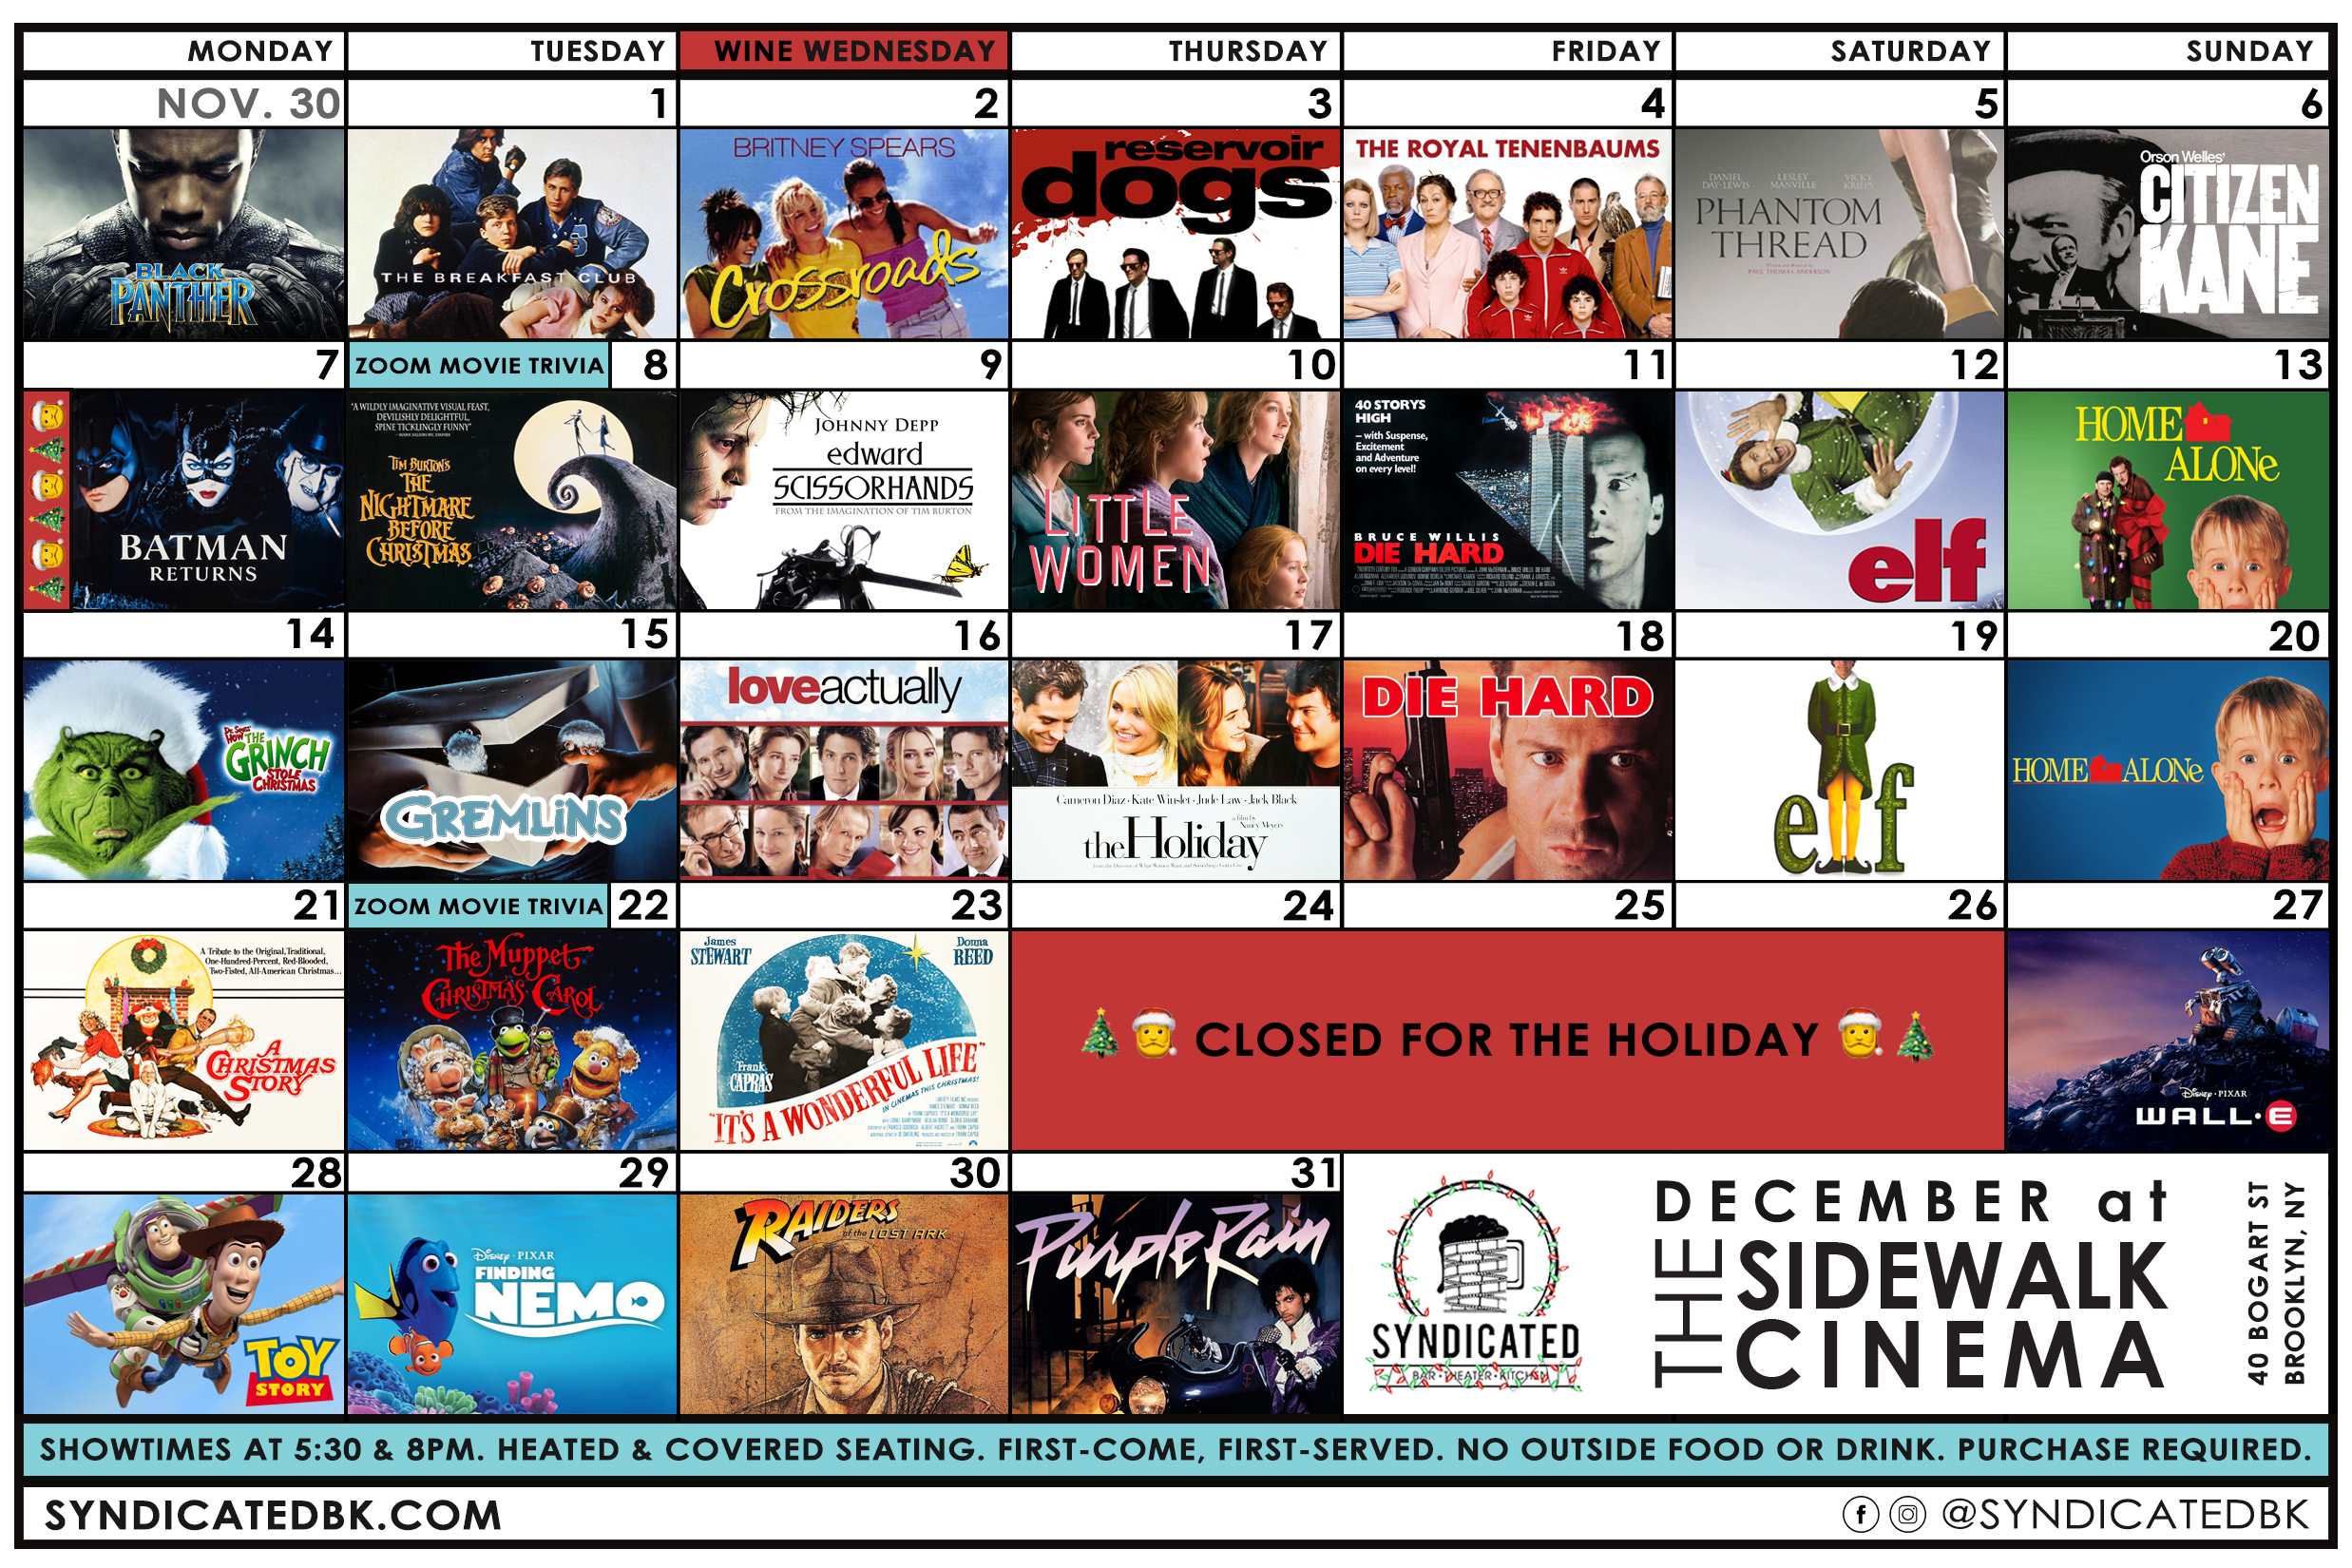 The December Sidewalk Cinema Schedule | November 30th – Black Panther | December 1st – The Breakfast Club | 2nd – Crossroads | 3rd – Reservoir Dogs | 4th – The Royal Tenenbaums | 5th – Phantom Thread | 6th – Citizen Kane | 7th – Batman Returns | 8th – Zoom Movie Trivia & The Nightmare Before Christmas | 9th – Edward Scissorhands | 10th – Little Women (2019) | 11th – Die Hard | 12th – Elf | 13th – Home Alone | 14th – Dr. Seuss' How the Grinch Stole Christmas (2000) | 15th – Gremlins | 16th – Love Actually | 17th – The Holiday | 18th – Die Hard | 19th – Elf | 20th – Home Alone | 21st – A Christmas Story | 22nd – Zoom Movie Trivia & The Muppet Christmas Carol | 23rd – It's a Wonderful Life | 24th-26th – Closed for the Holiday | 27th – WALL-E | 28th – Toy Story | 29th – Finding Nemo | 30th – Raiders of the Lost Ark | 31st – Purple Rain